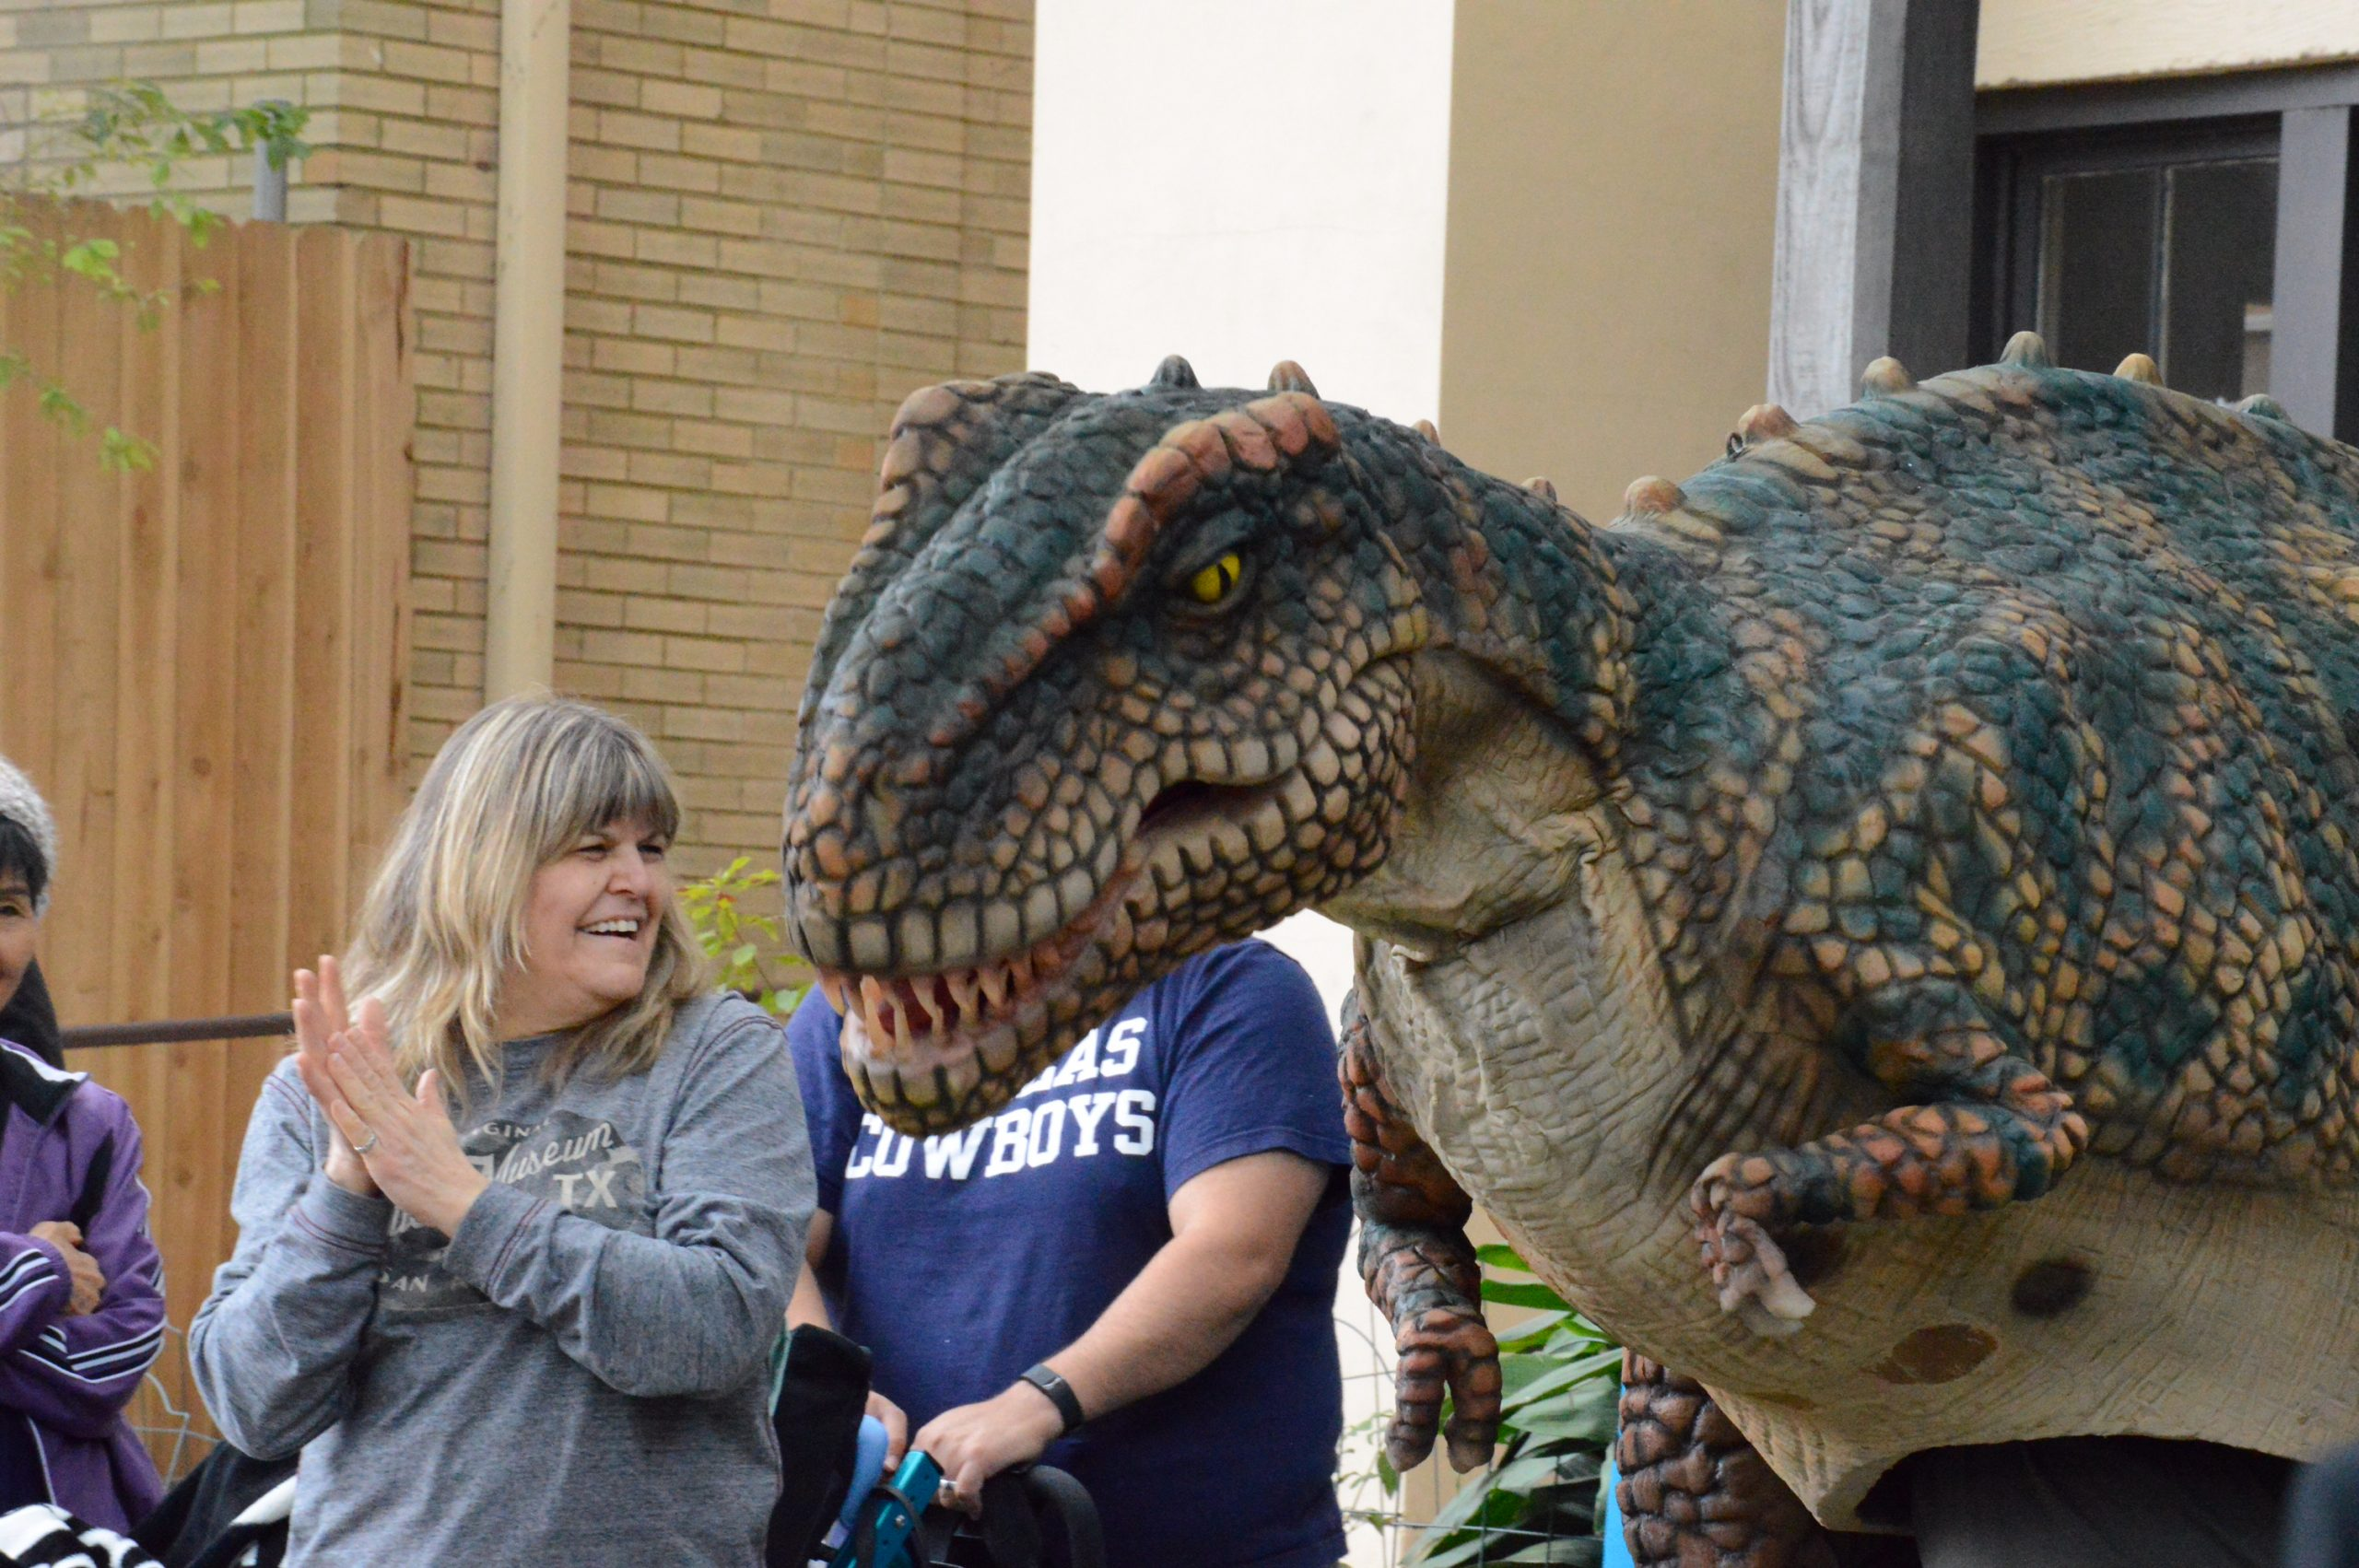 Museum members welcome the dinosaur representative from the new Naylor Family Dinosaur Gallery at the Witte. Photo by Lea Thompson.